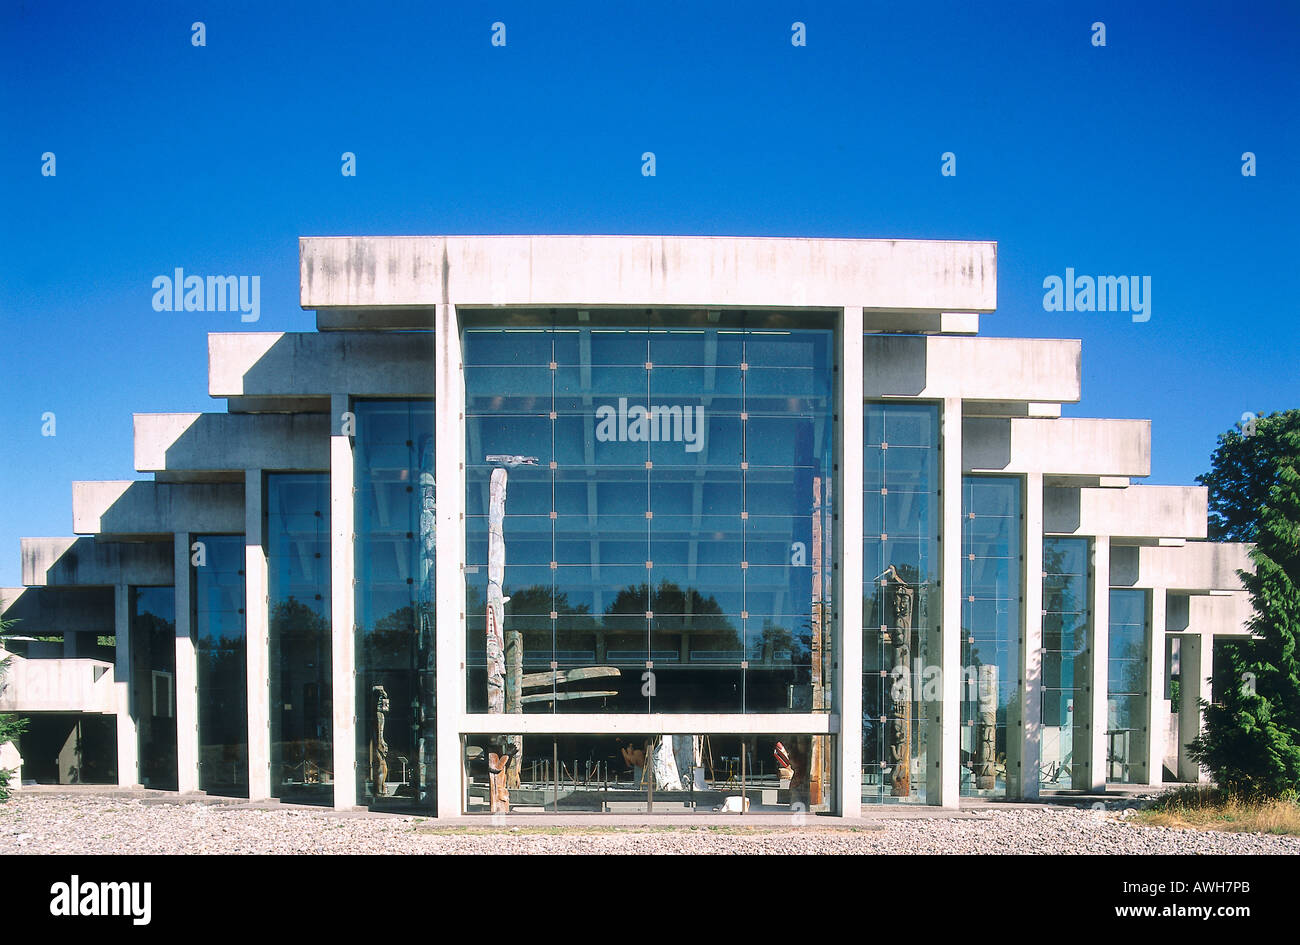 Moa Ubc Architecture Stock Photos & Moa Ubc Architecture Stock ...